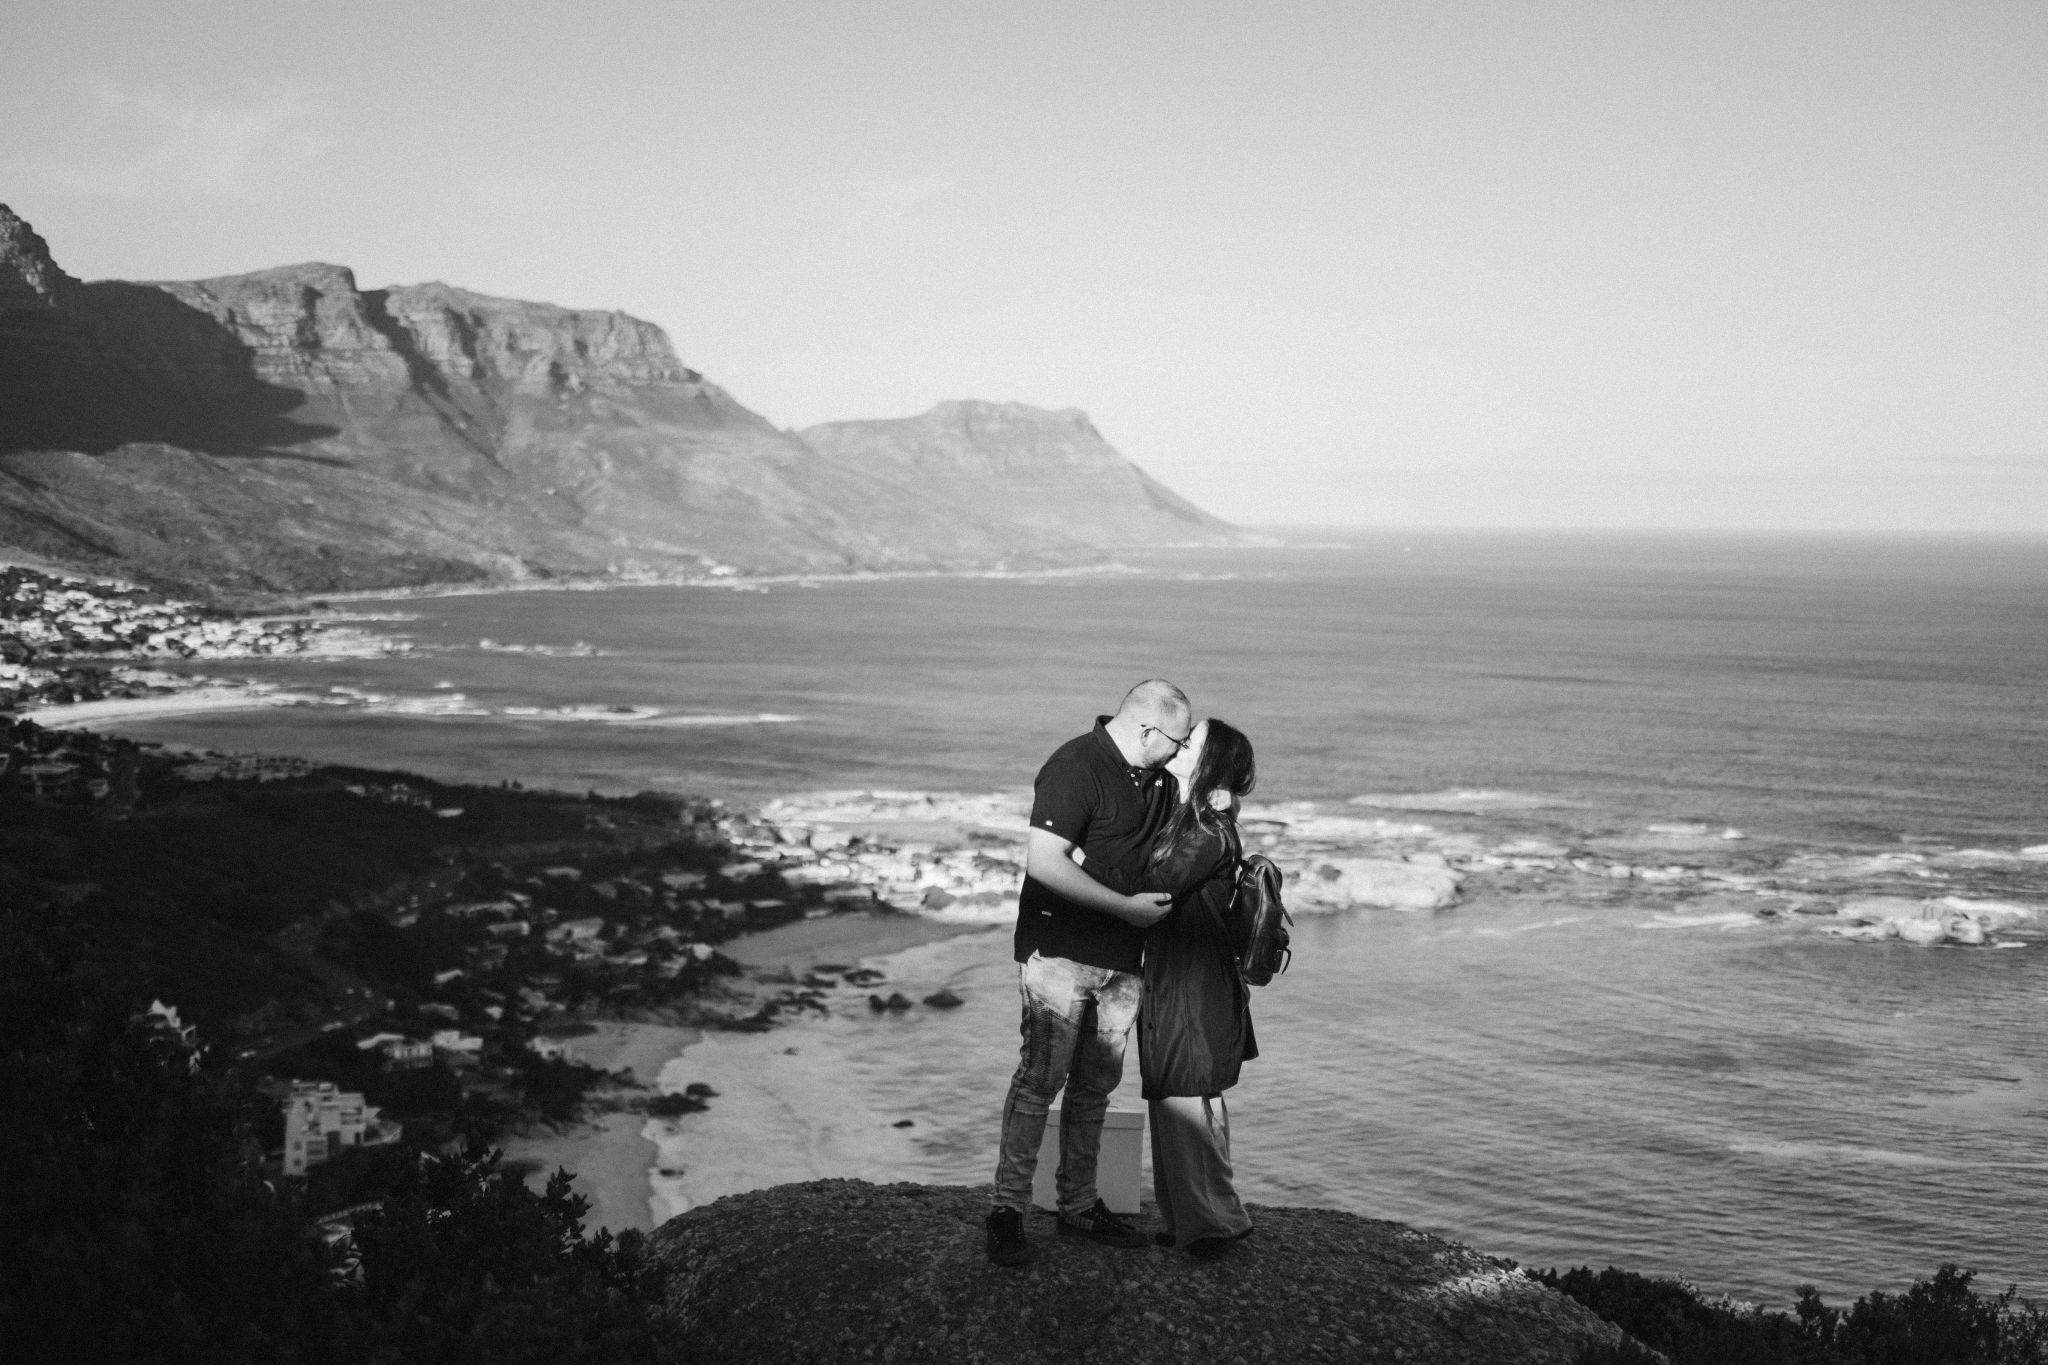 The Rock proposal